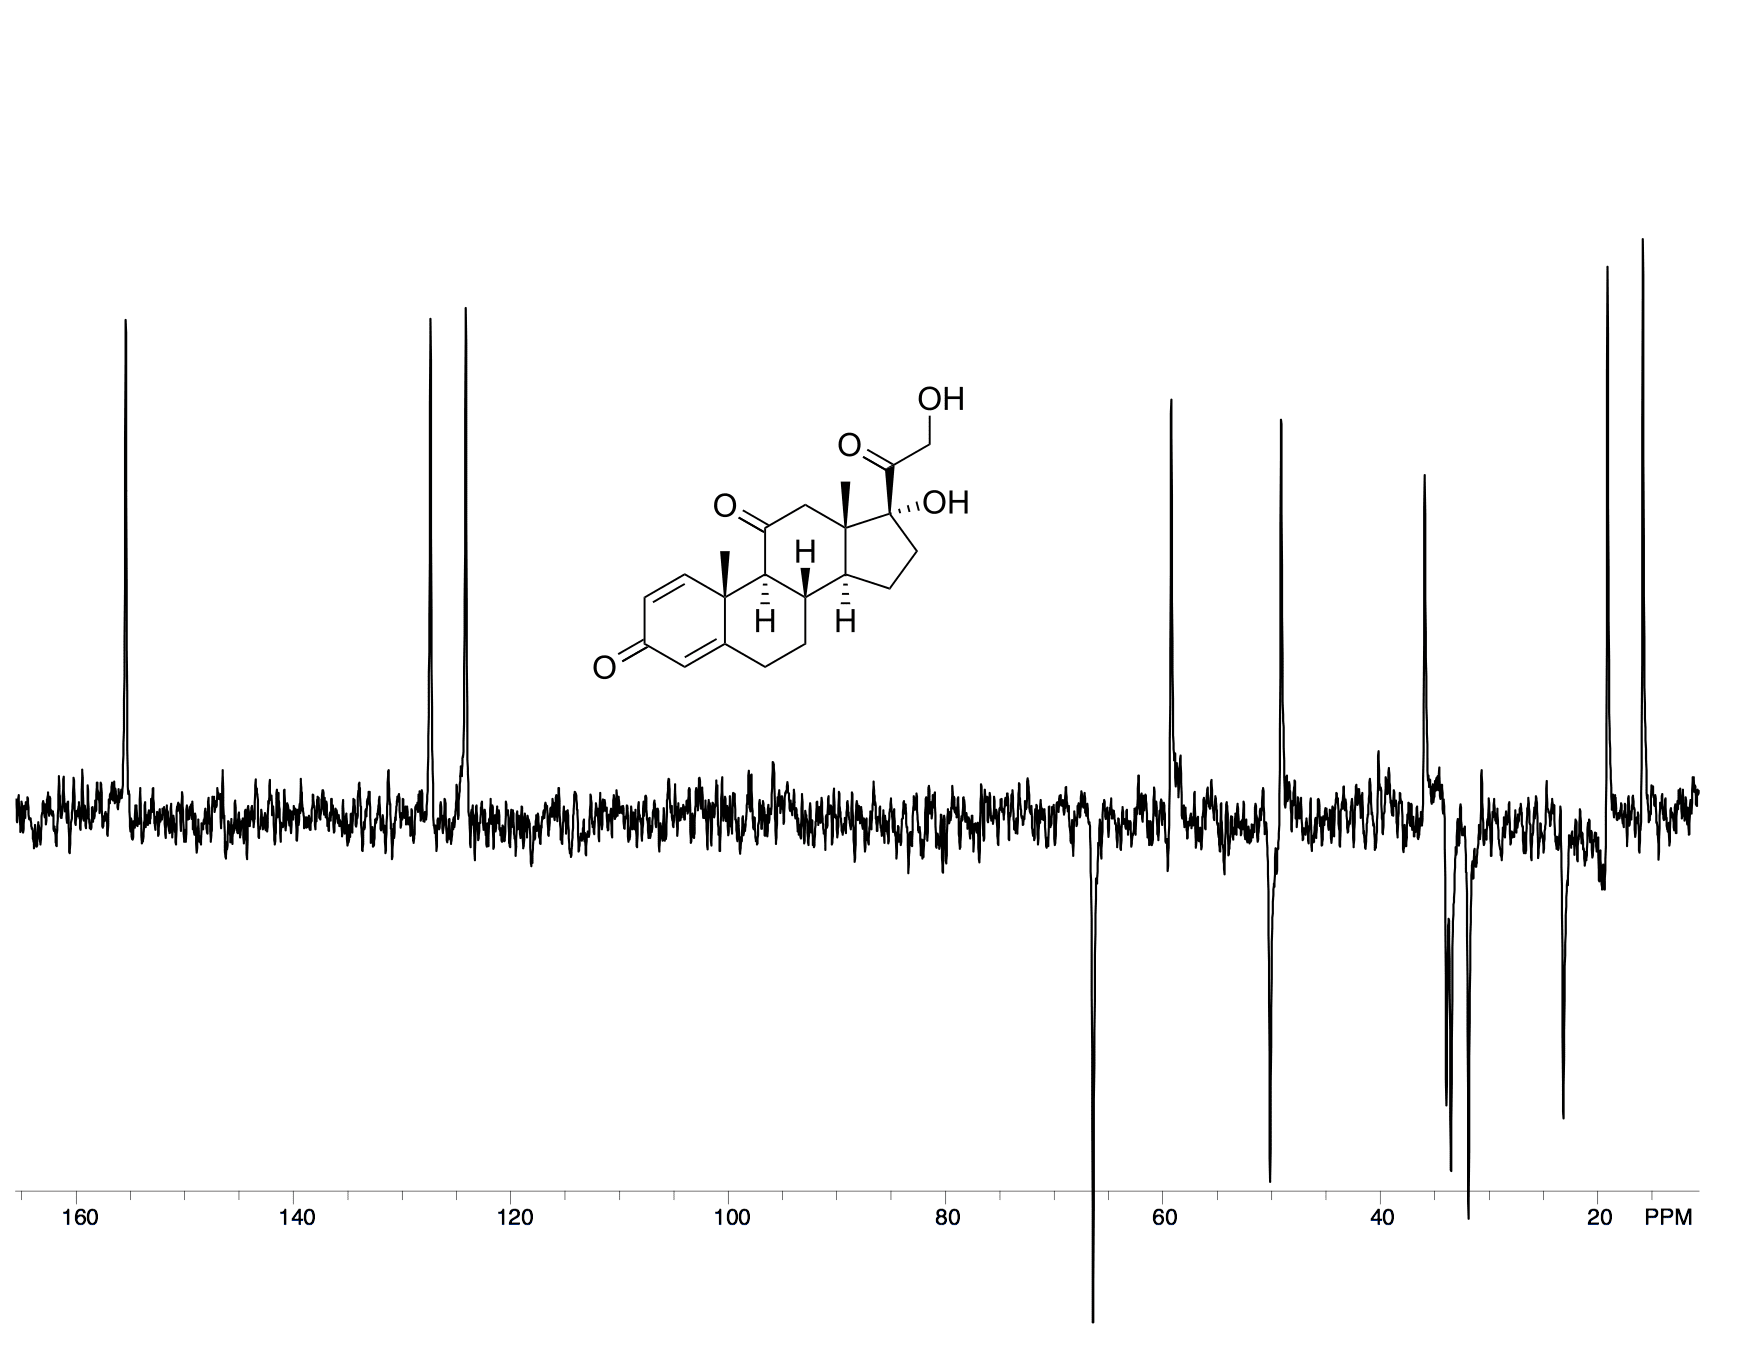 Anasazi Instruments DEPT 135 spectrum with Prednisone molecular structure graph